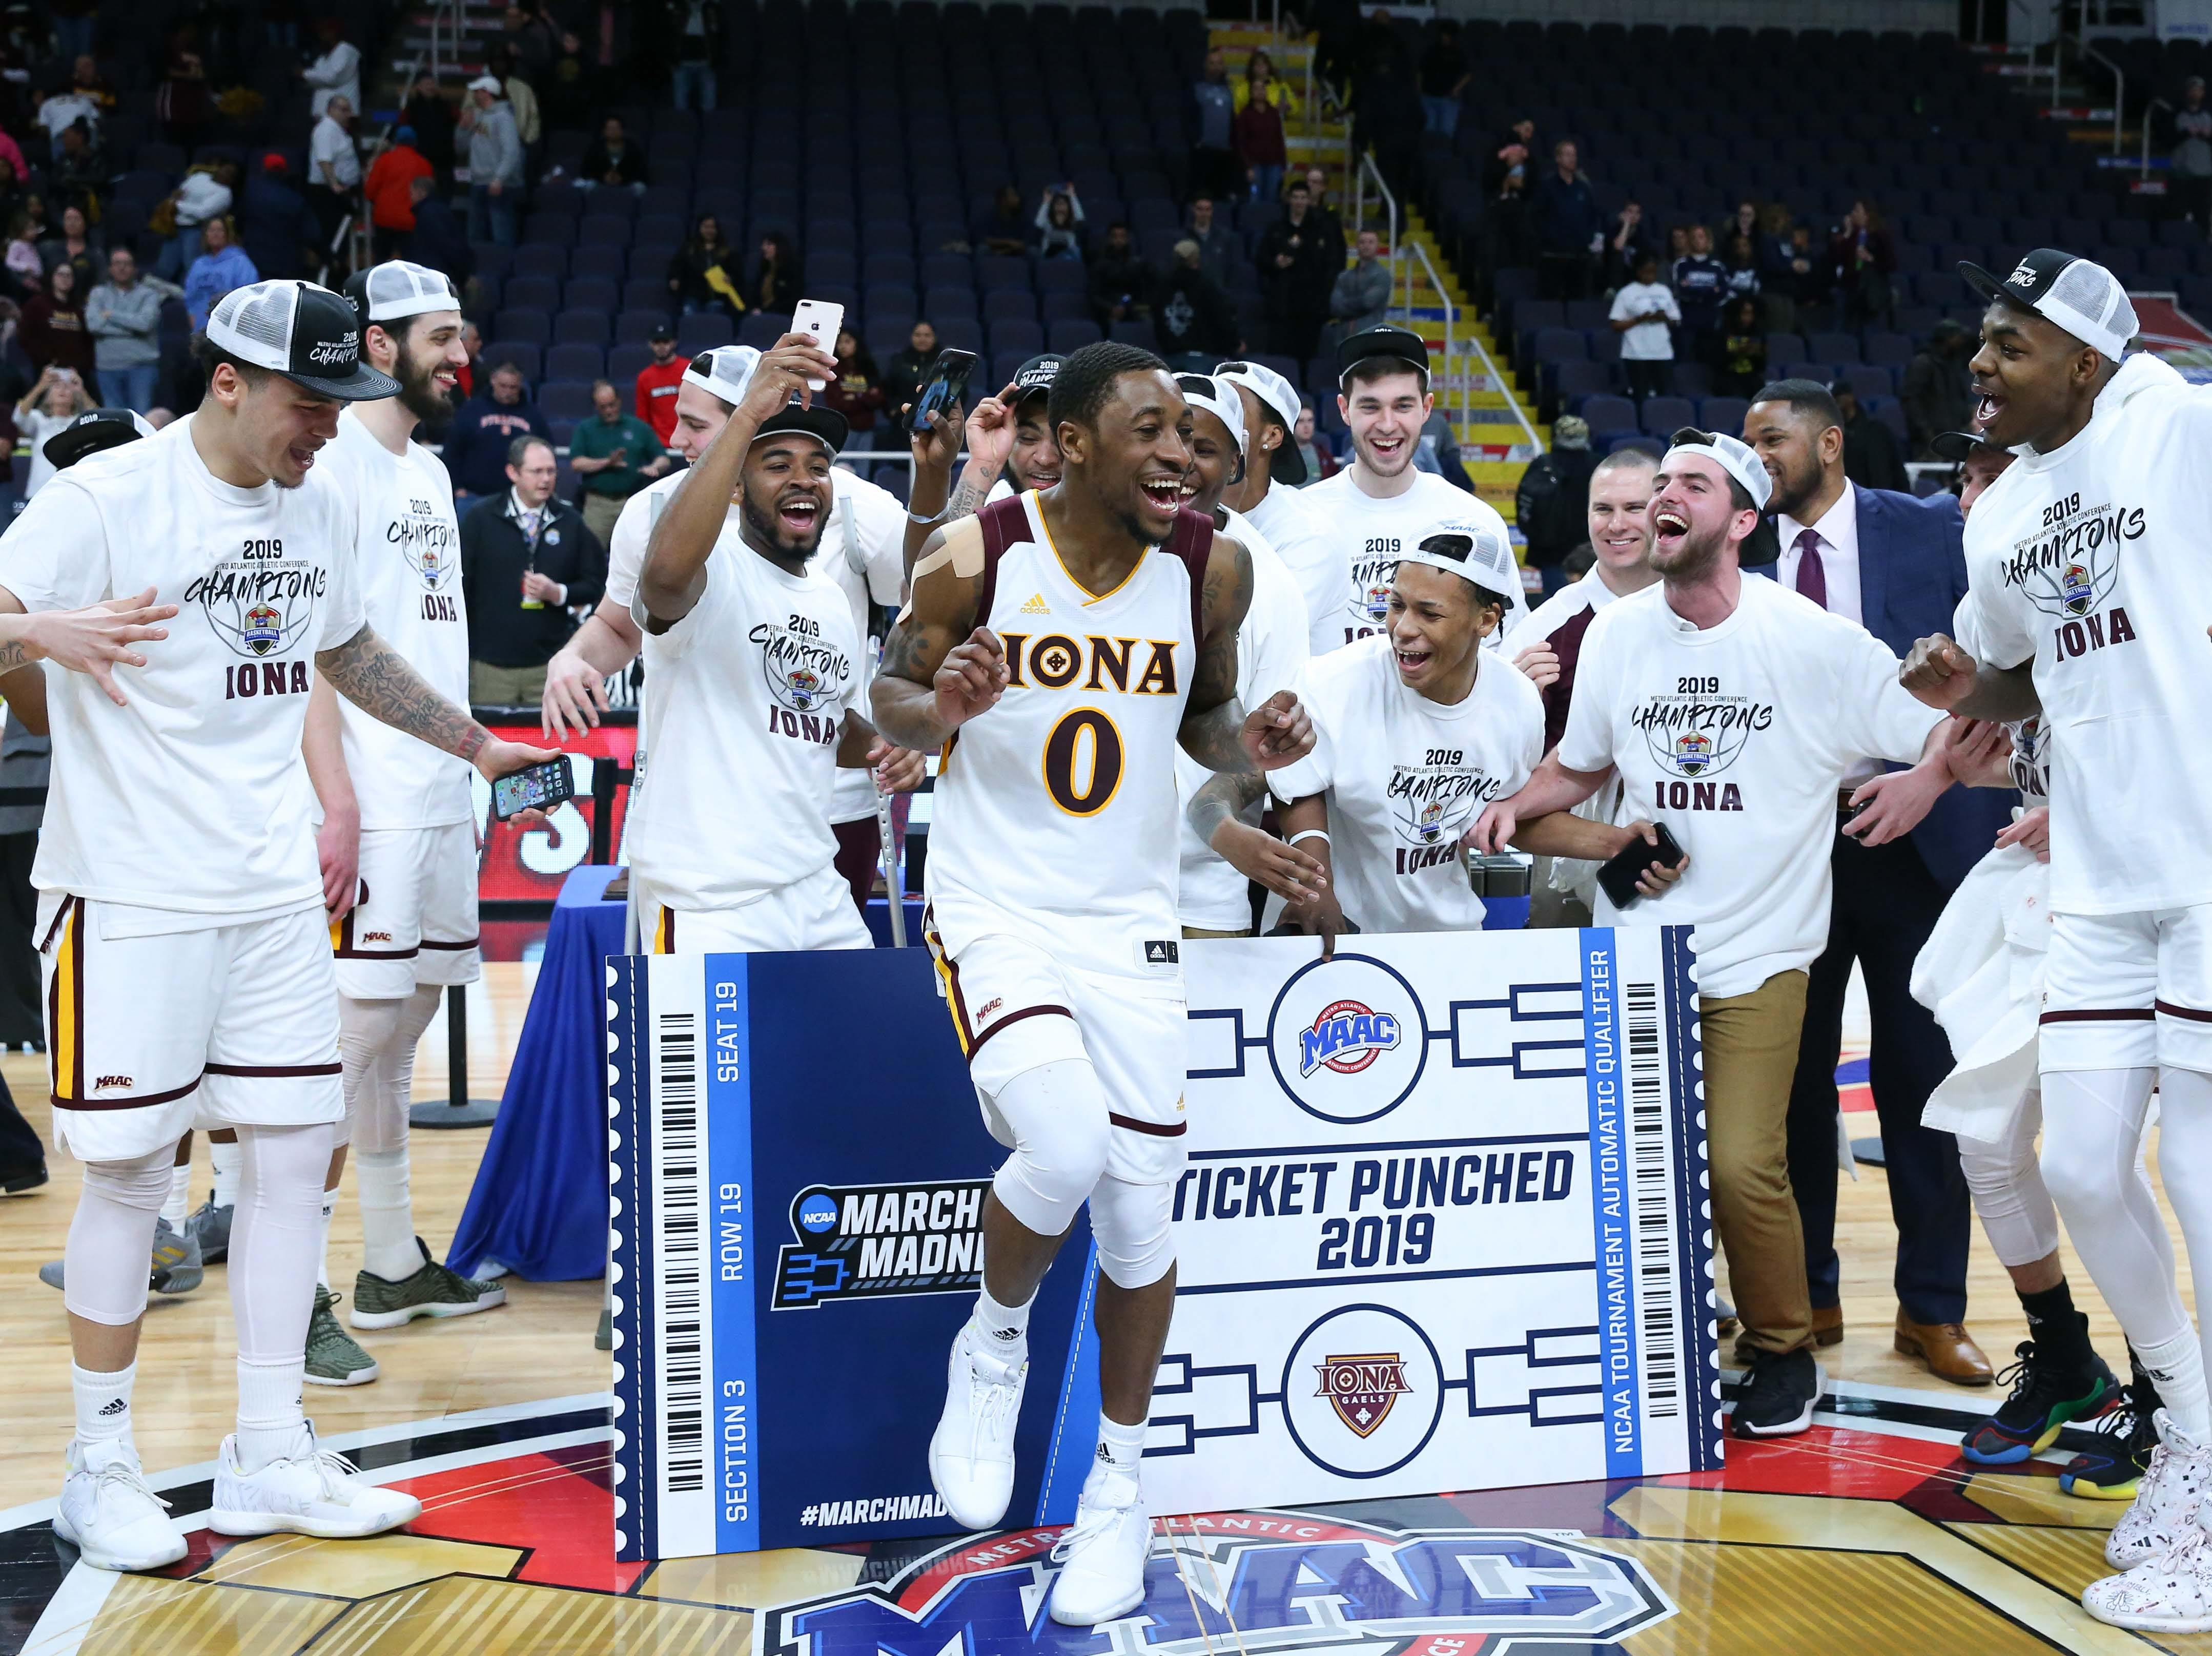 Iona (17-15), No. 16 seed in Midwest, Metro Atlantic Athletic Conference champion